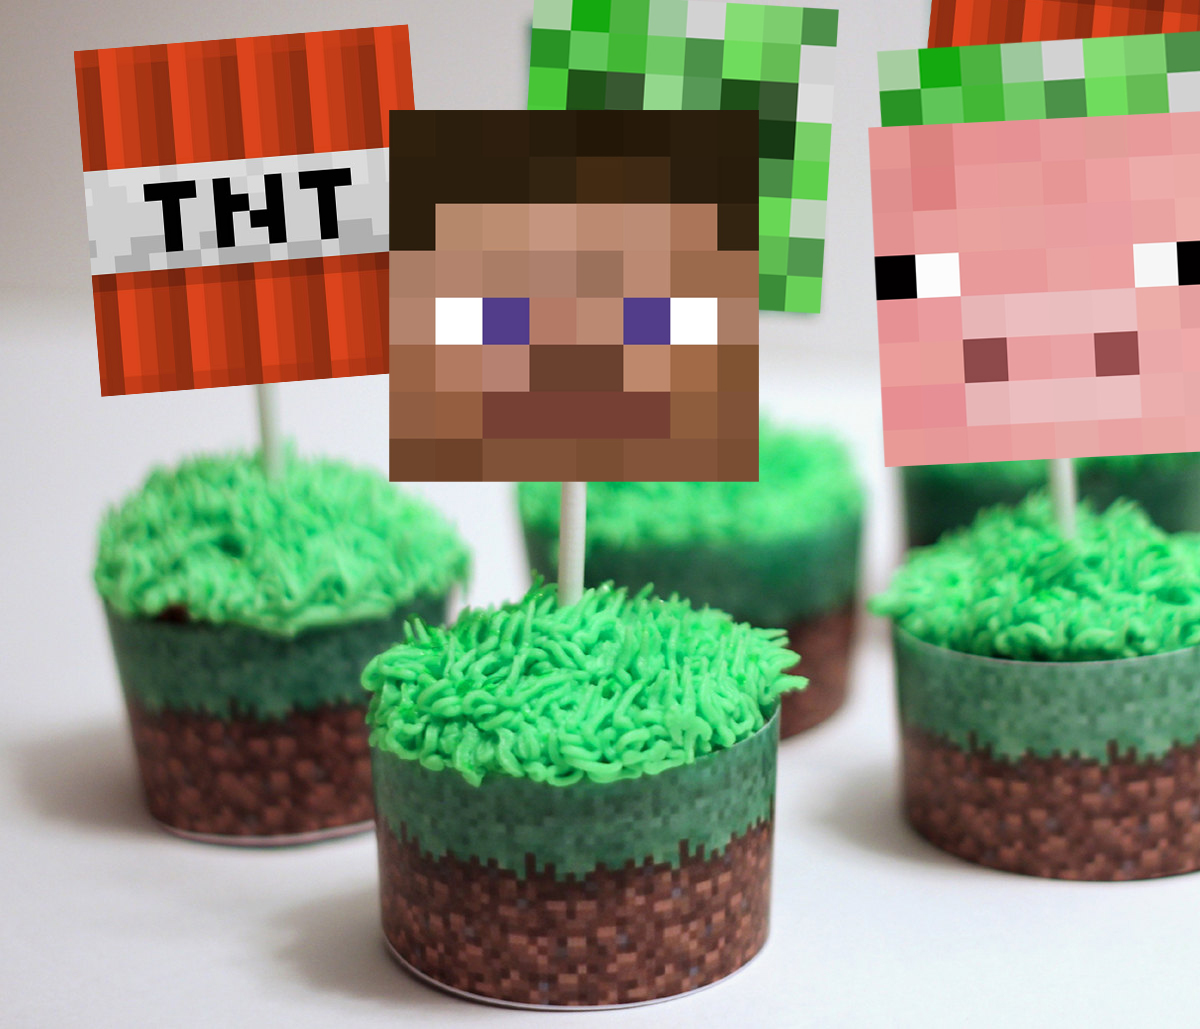 This is a picture of Printable Minecraft Cupcake Toppers throughout minecraft cut out figure